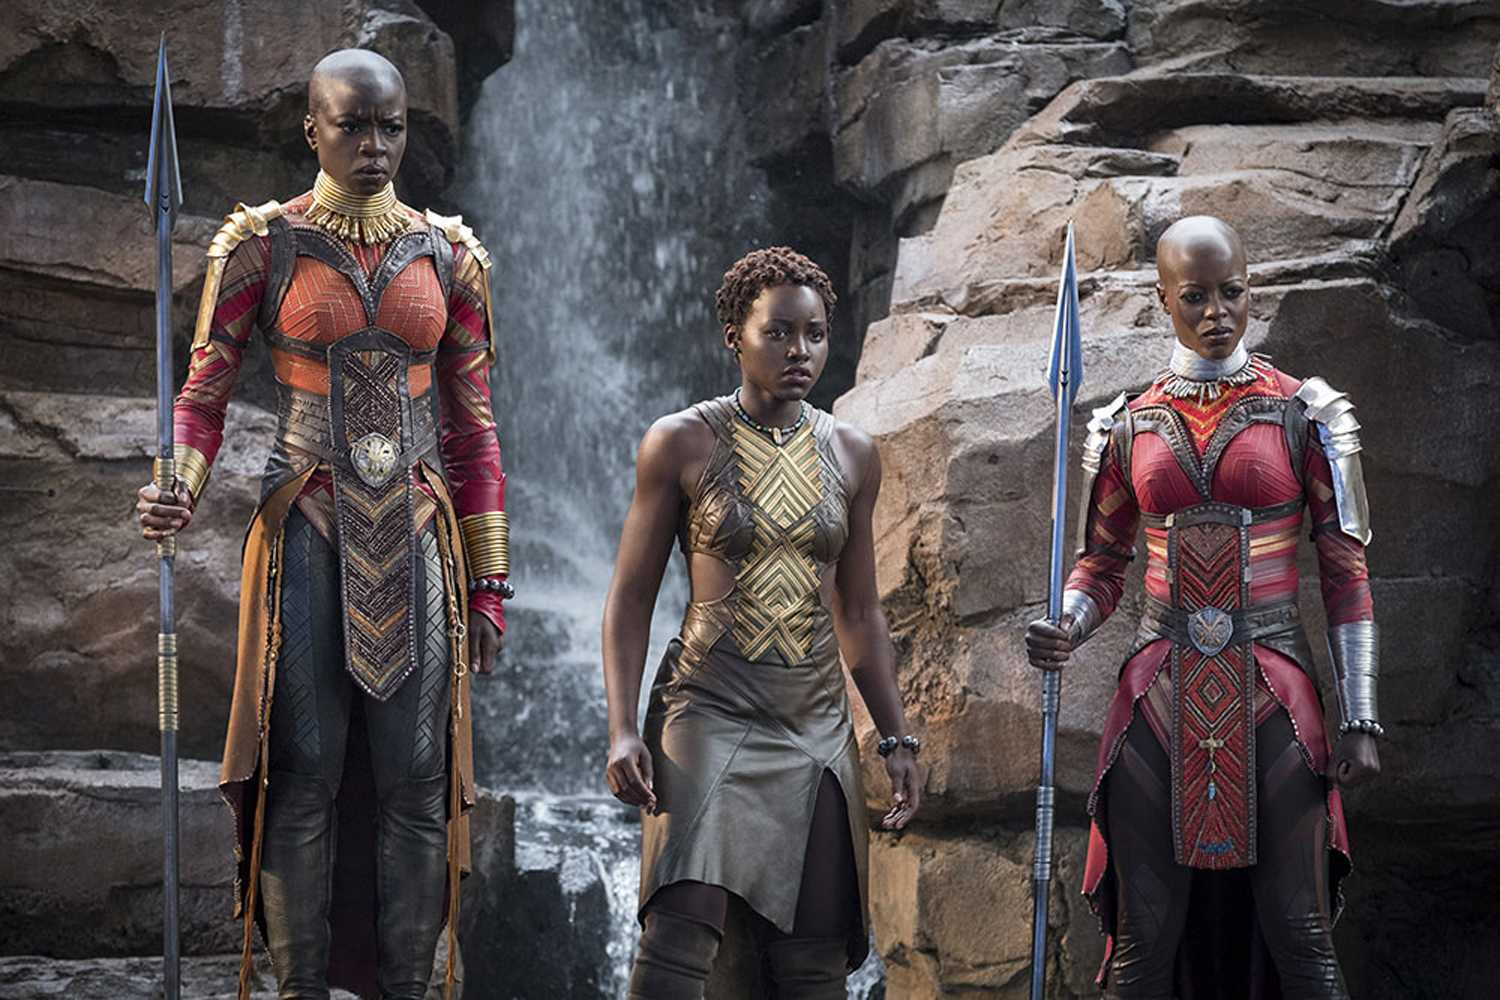 Three members of the Dora Milaje play major roles in